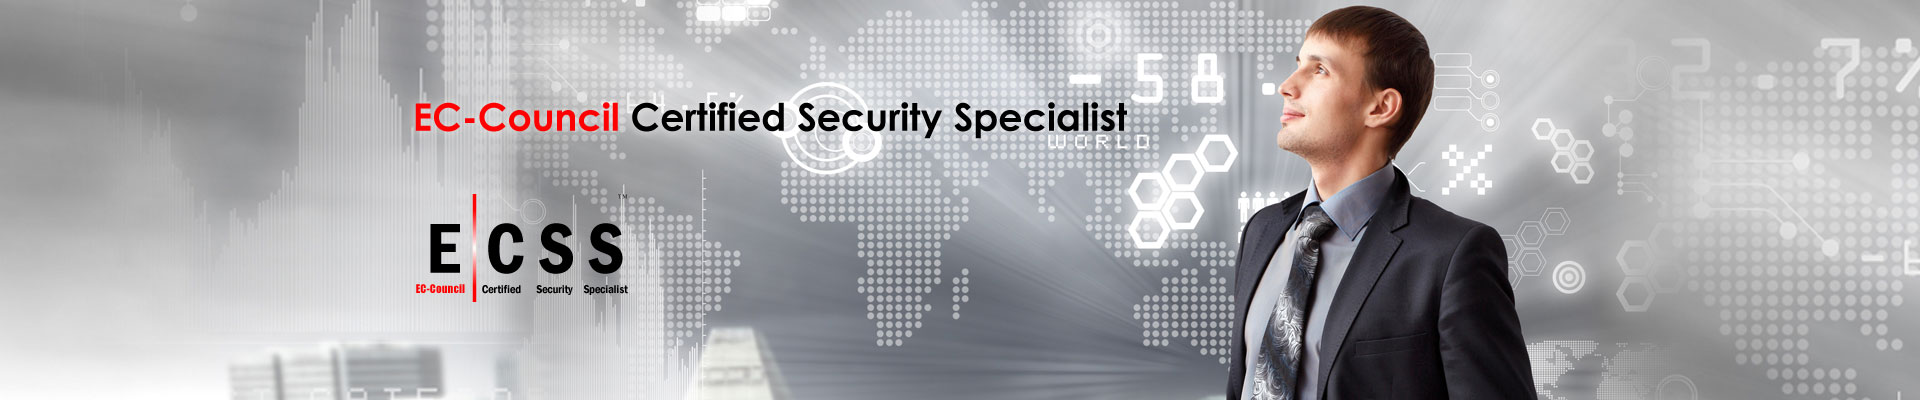 EC-COUNCIL CERTIFIED SECURITY SPECIALIST